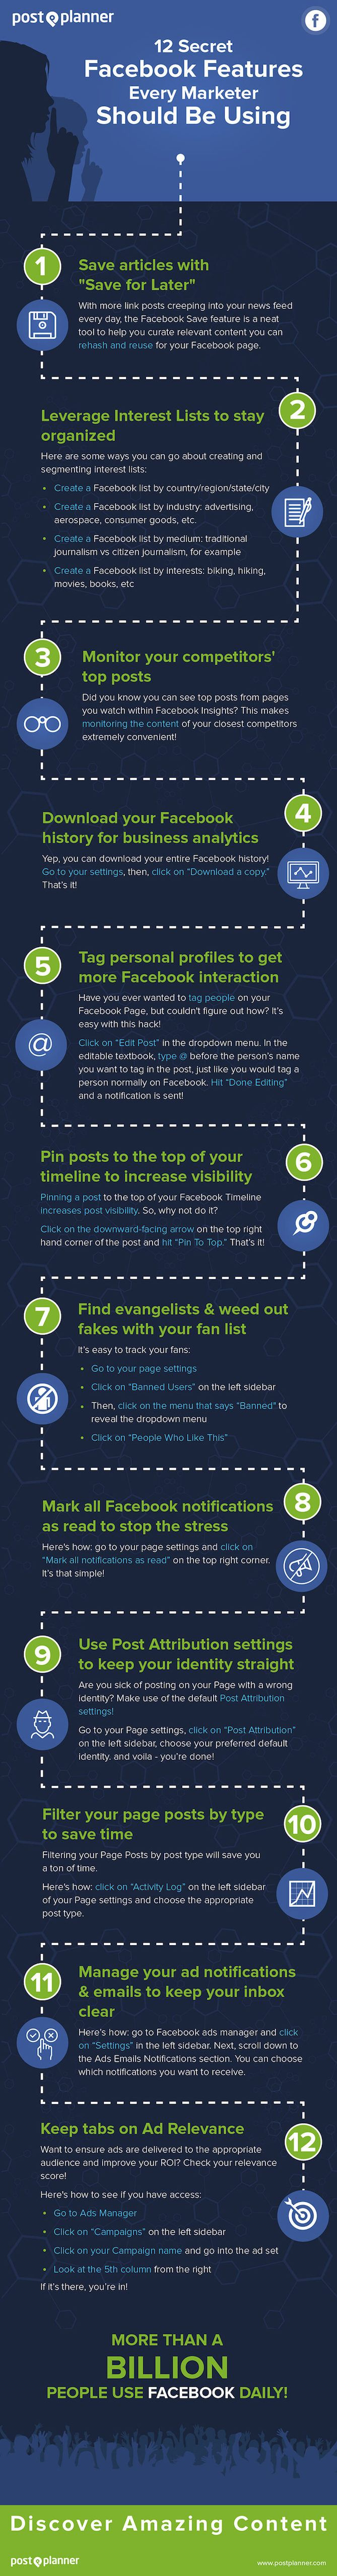 12 Secret Facebook Features Every Marketer Should Be Using #Infographic